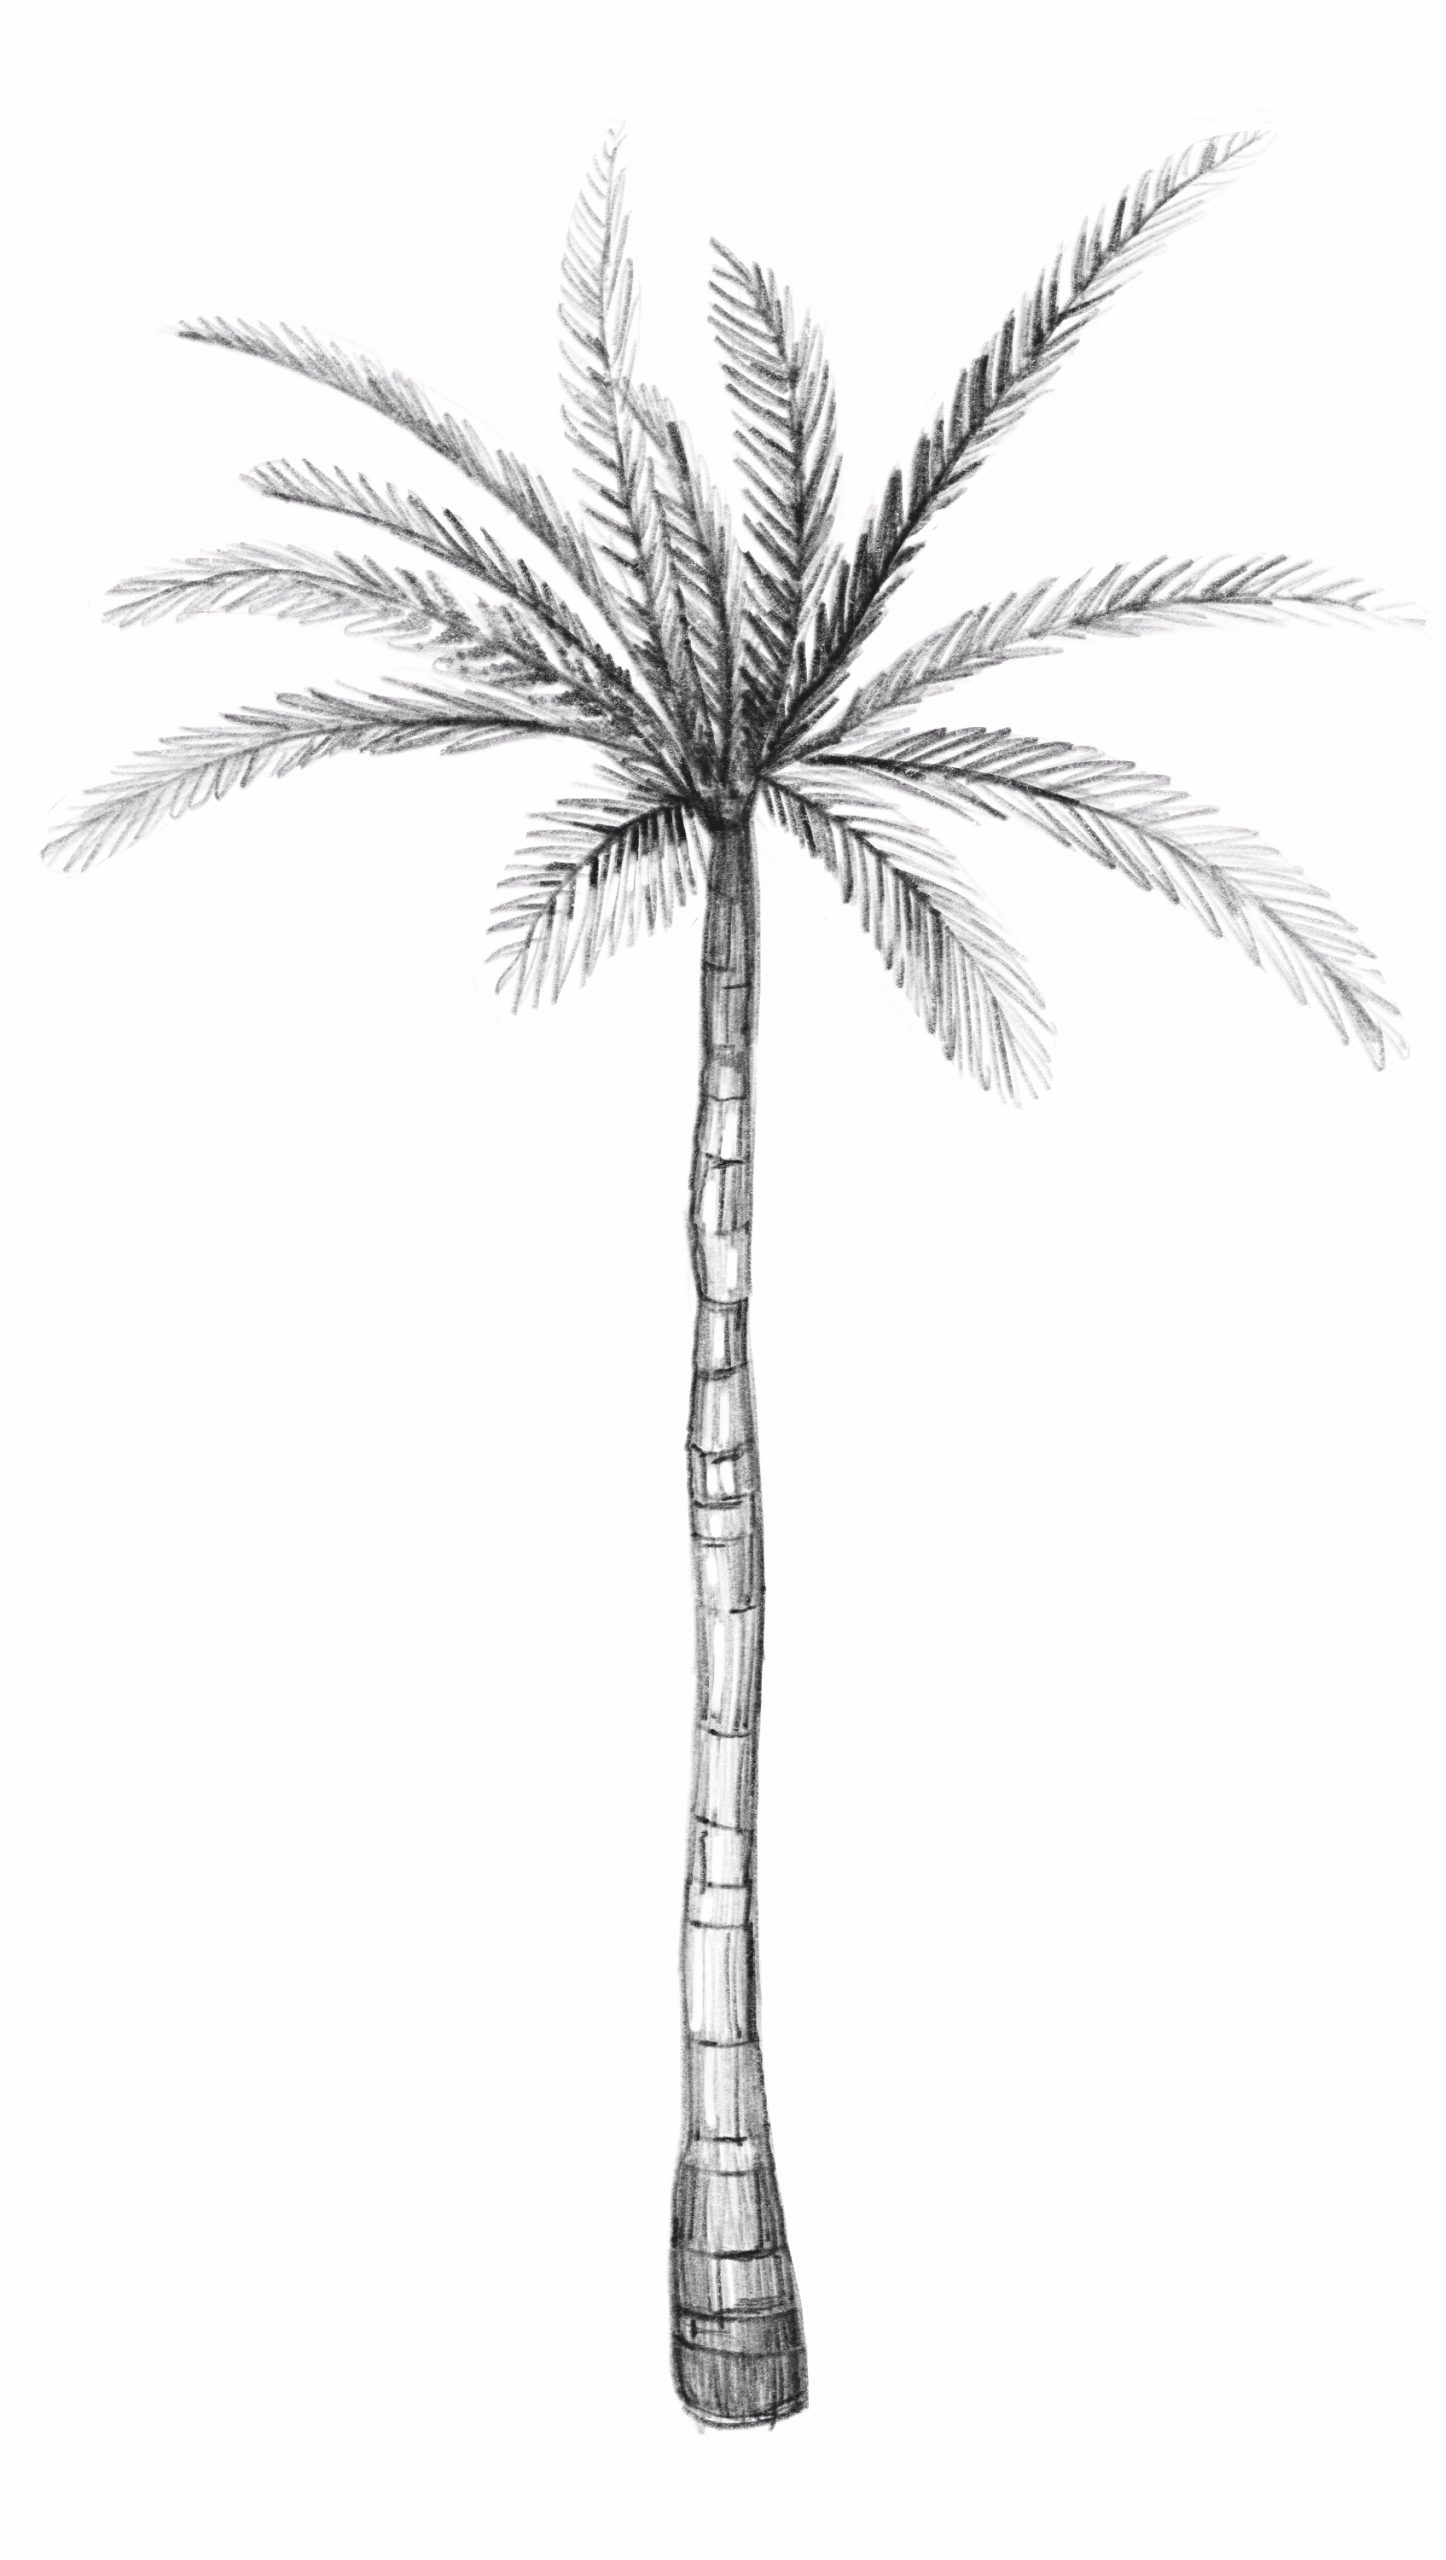 The Palm Tree You'll Be Drawing